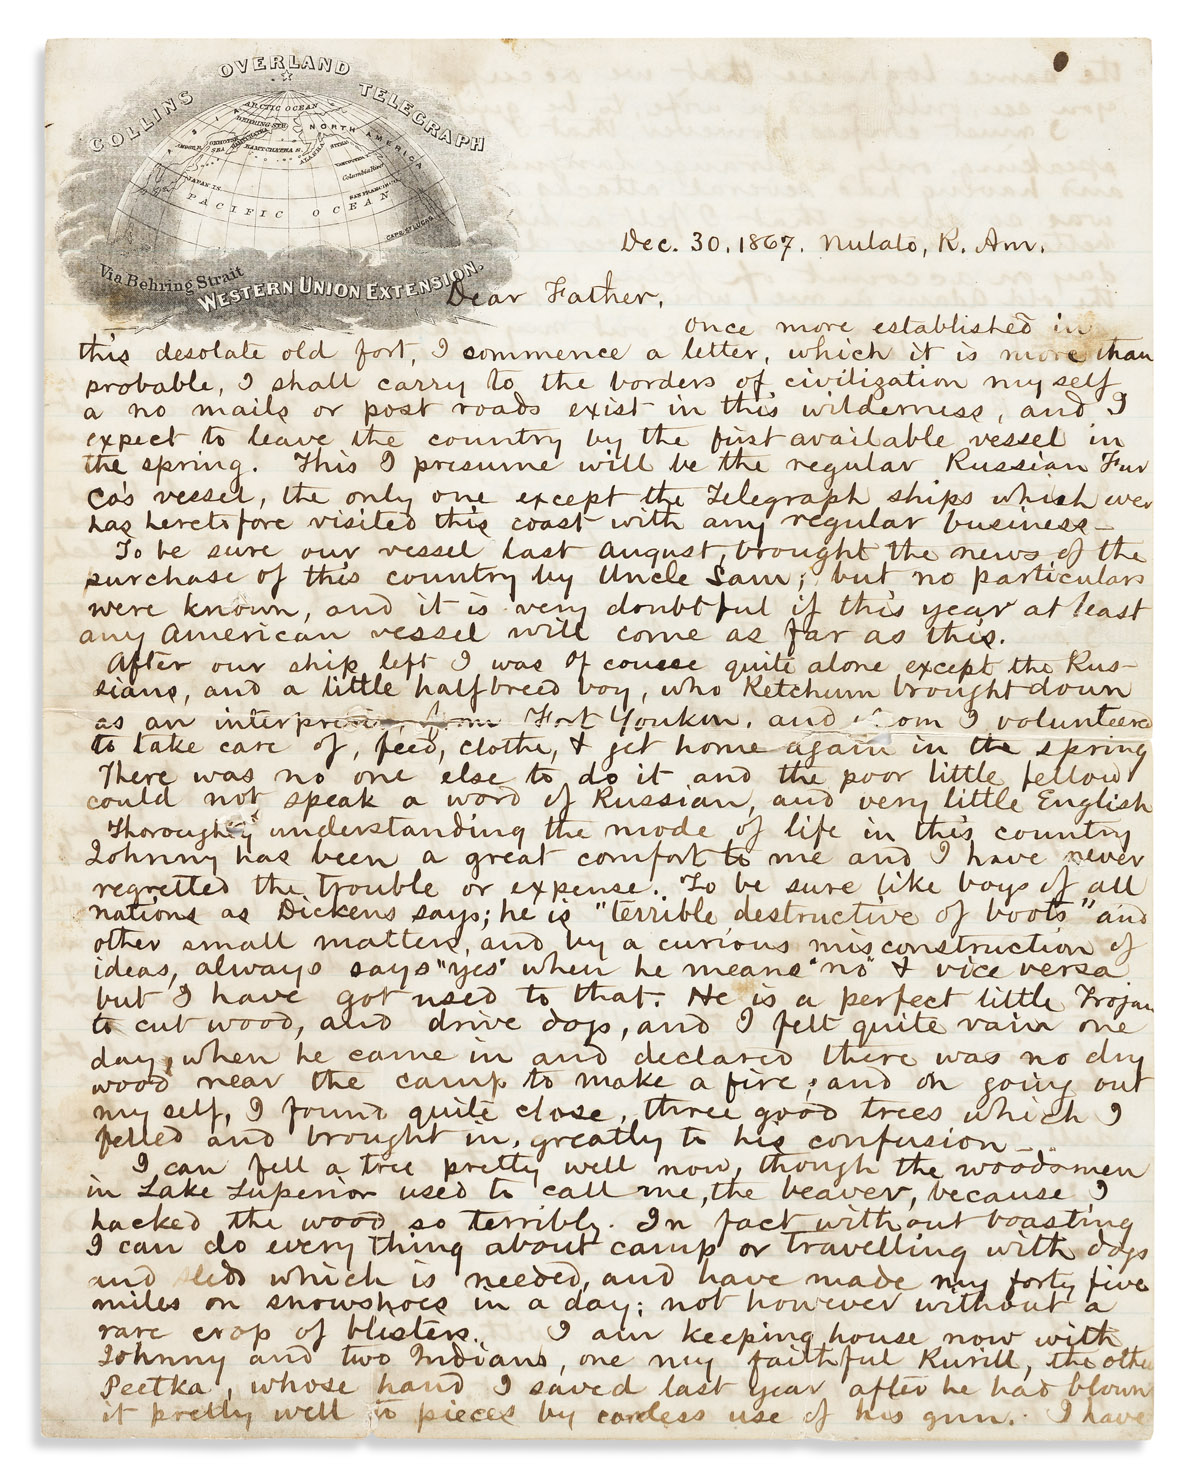 (ALASKA.) William Healey Dall. An extremely detailed letter from the Alaskan wilderness in the year of the Alaska Purchase.